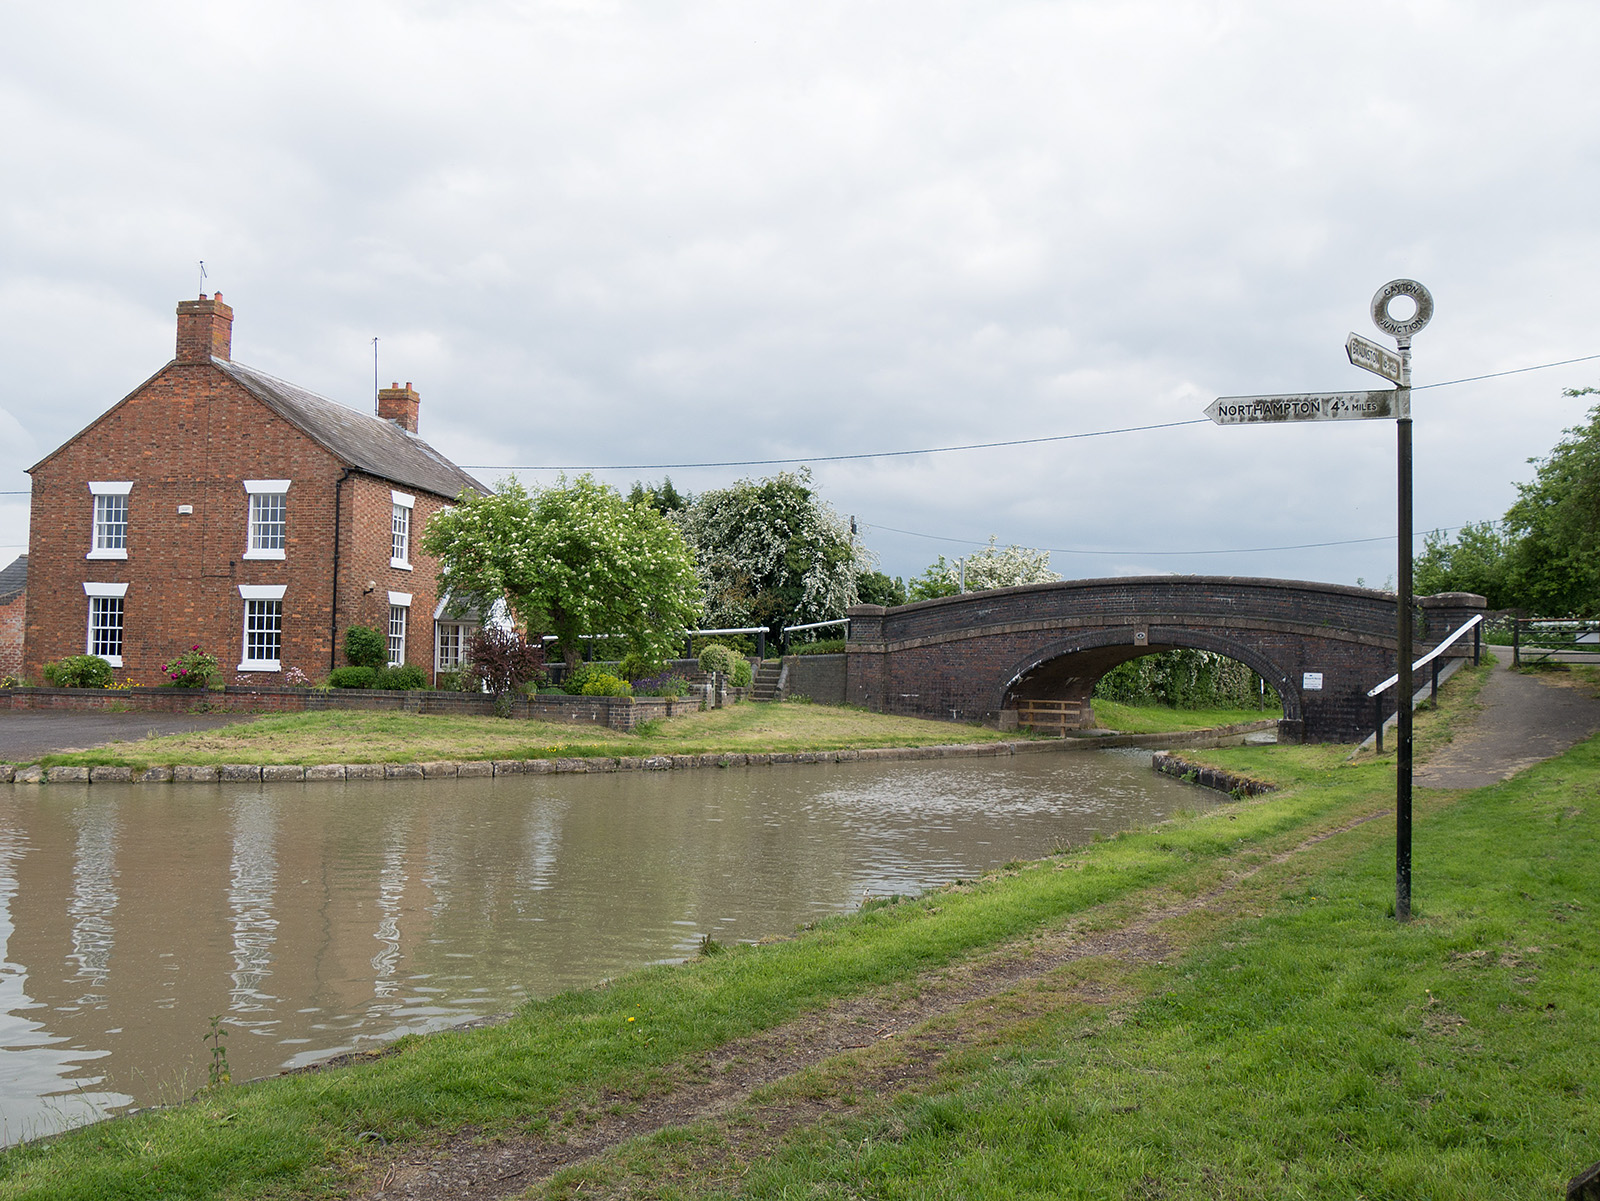 Looking back towards bridge 48 - the Northampton arm is off to the left (heading north to Northampton)